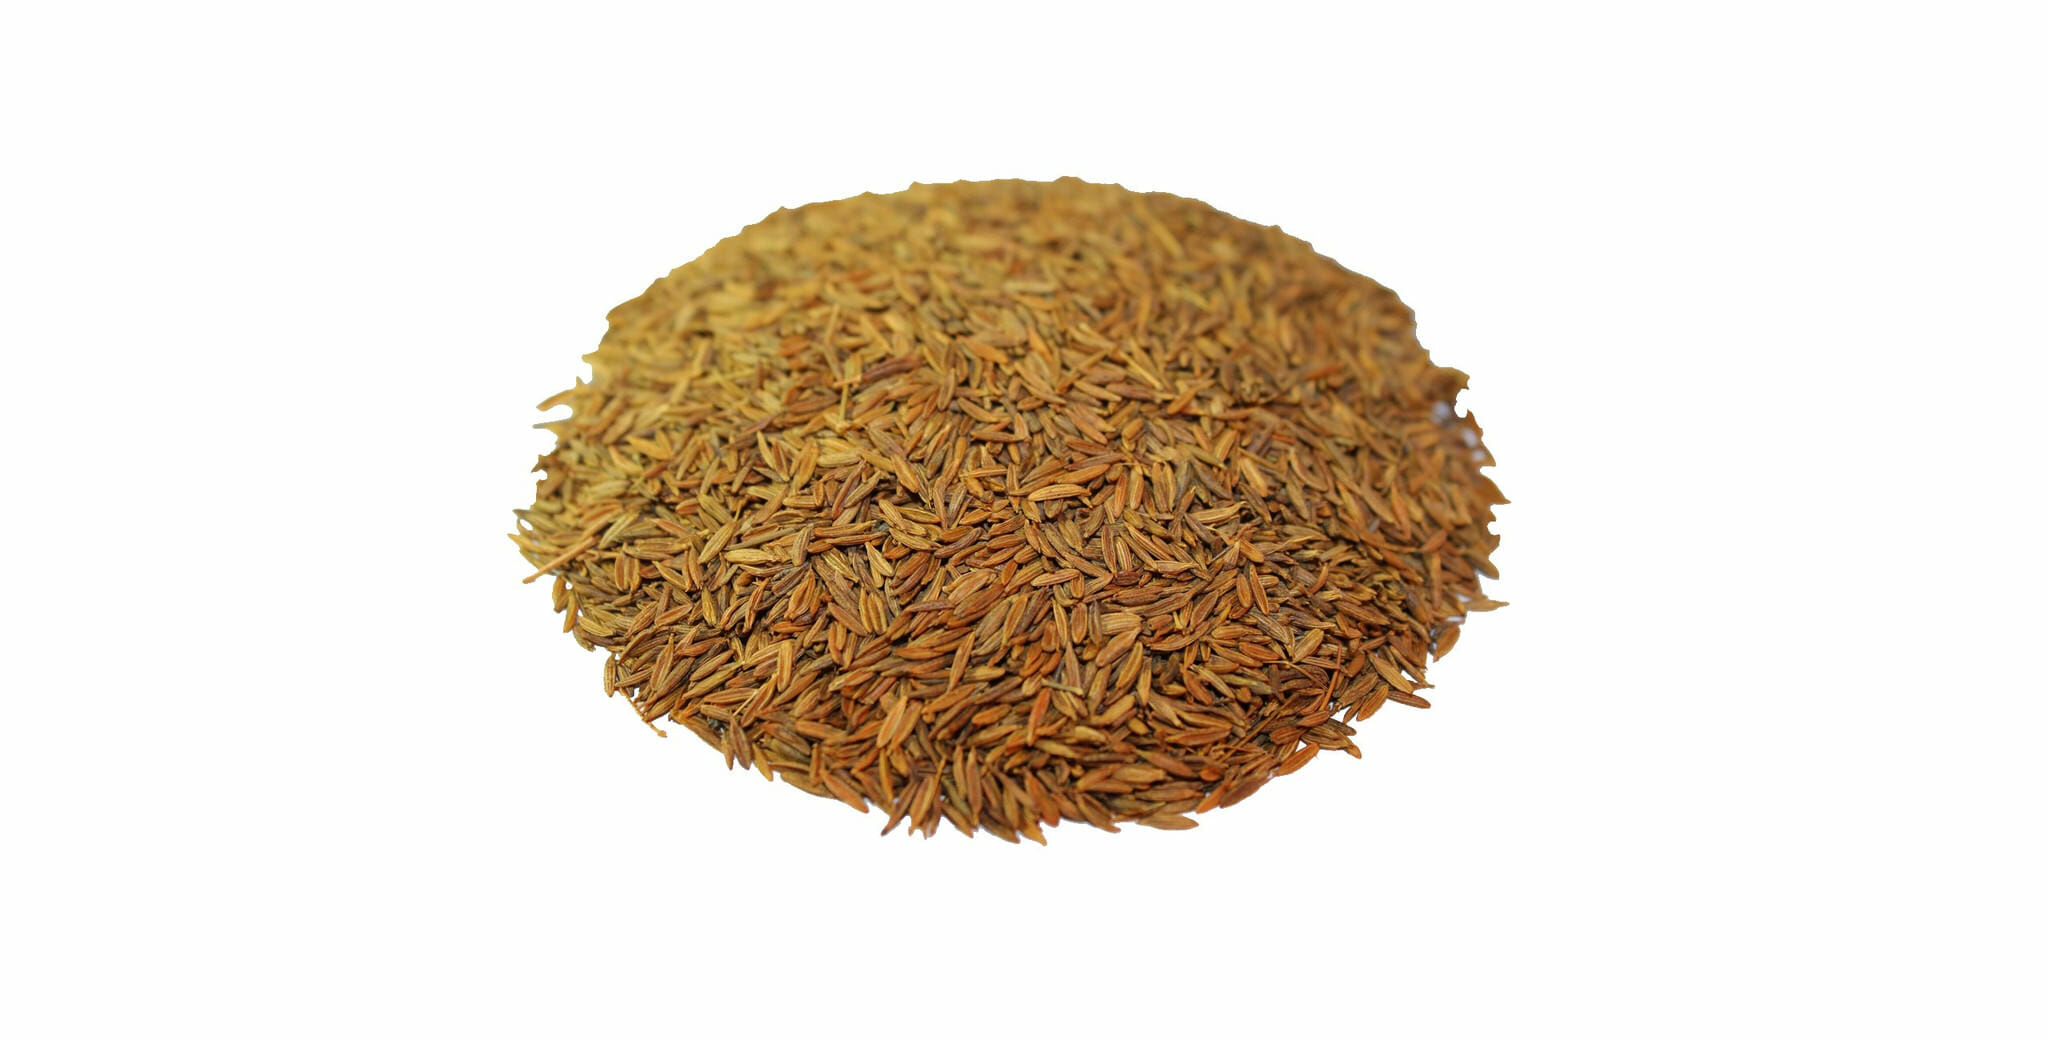 Cumin (Jeera) dried whole seeds - The Spiceworks | Online ...